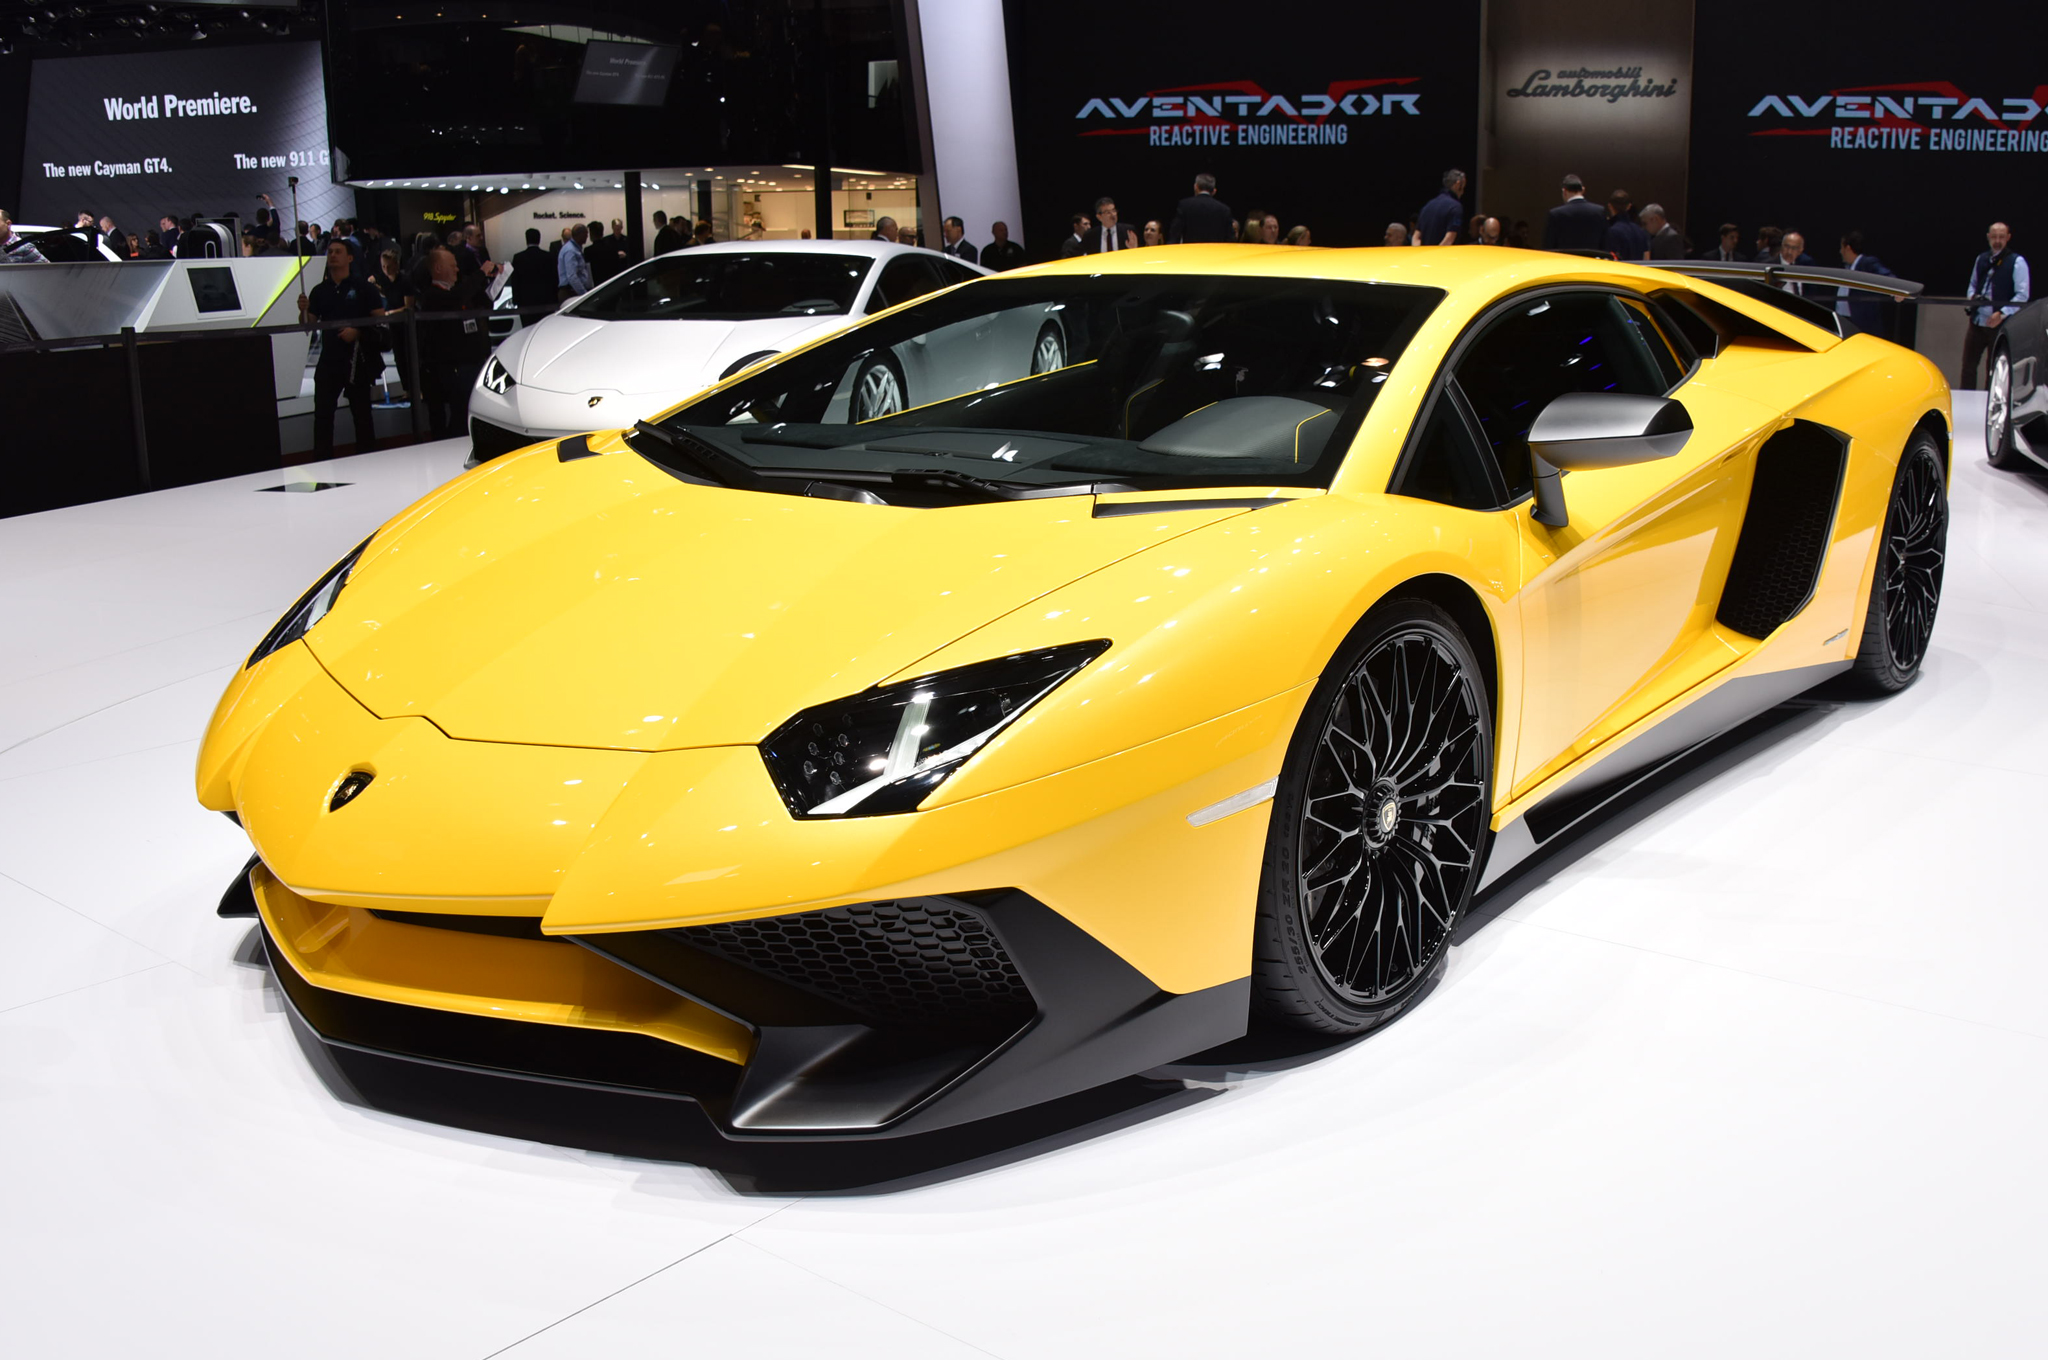 2016 lamborghini aventador lp750-4 sv starts at $493,095 in the u.s.